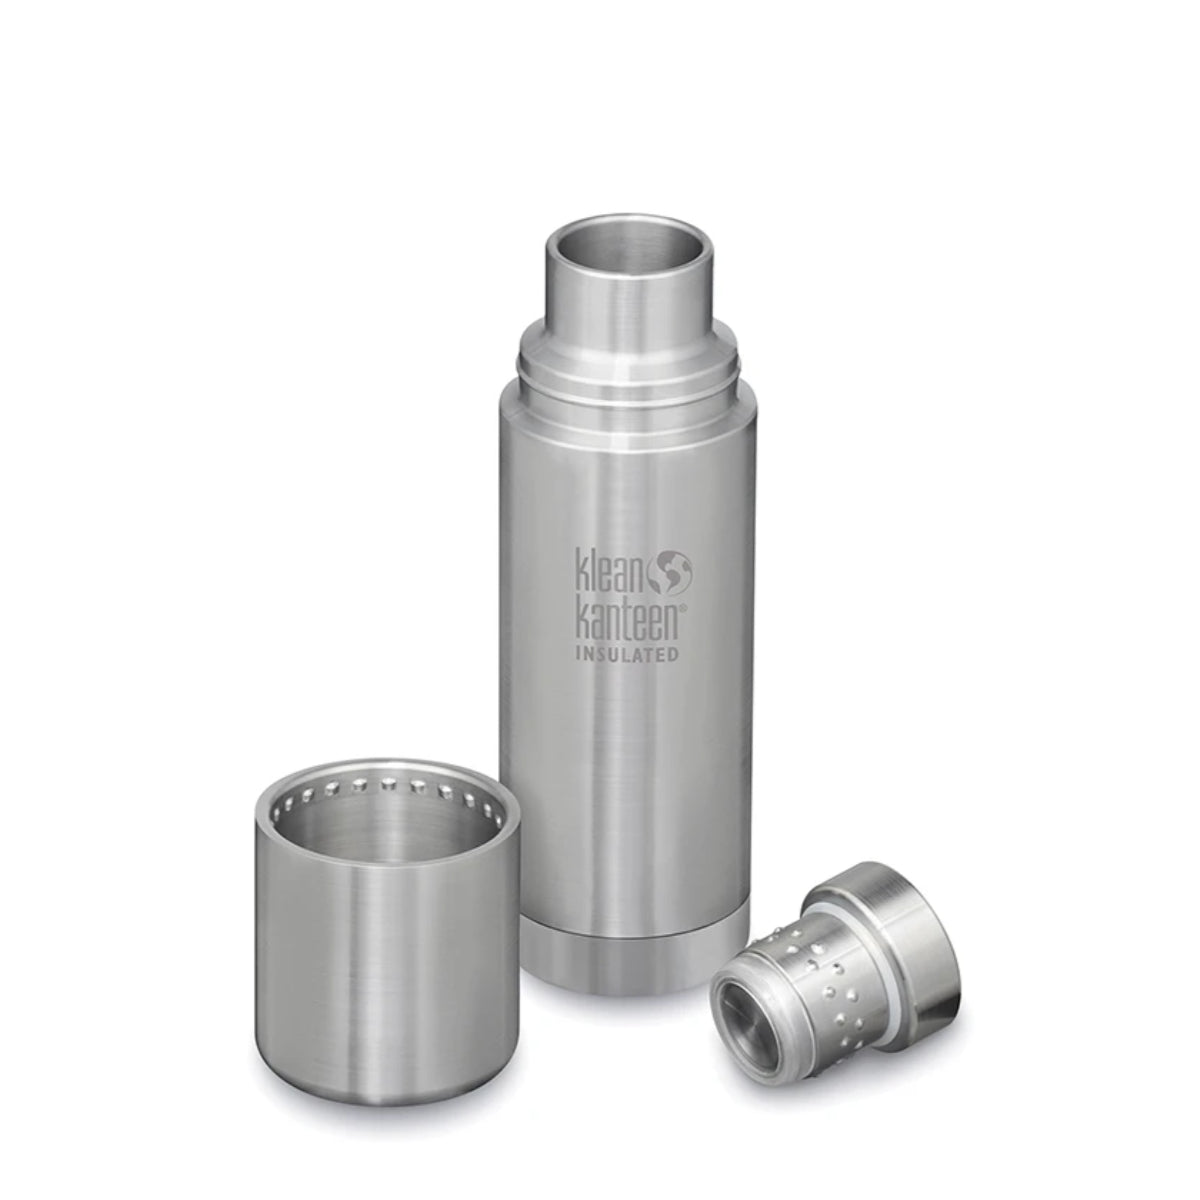 Klean Kanteen Insulated TKPro 500ml Kanteen Thermos Flask